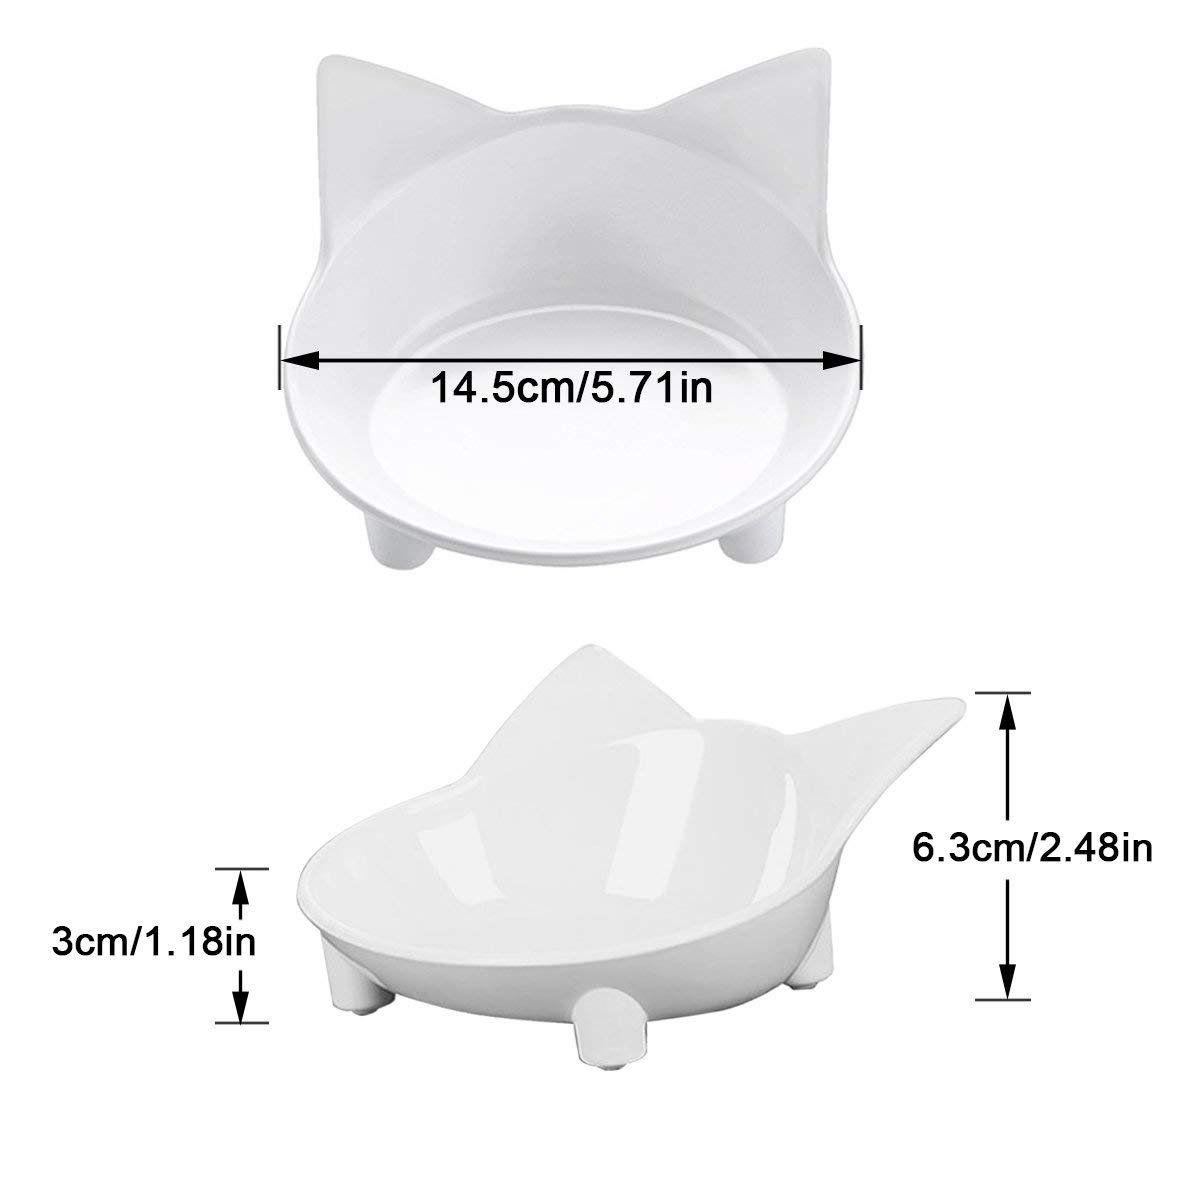 Aemiao Melamine Shallow Cat Food Bowl Wide Mouth Cat Dishes Non Slip Cat Feeding Bowls Cute Kitten Bowls For Relief Of Whis Cat Feeding Kitten Bowls Cat Dishes